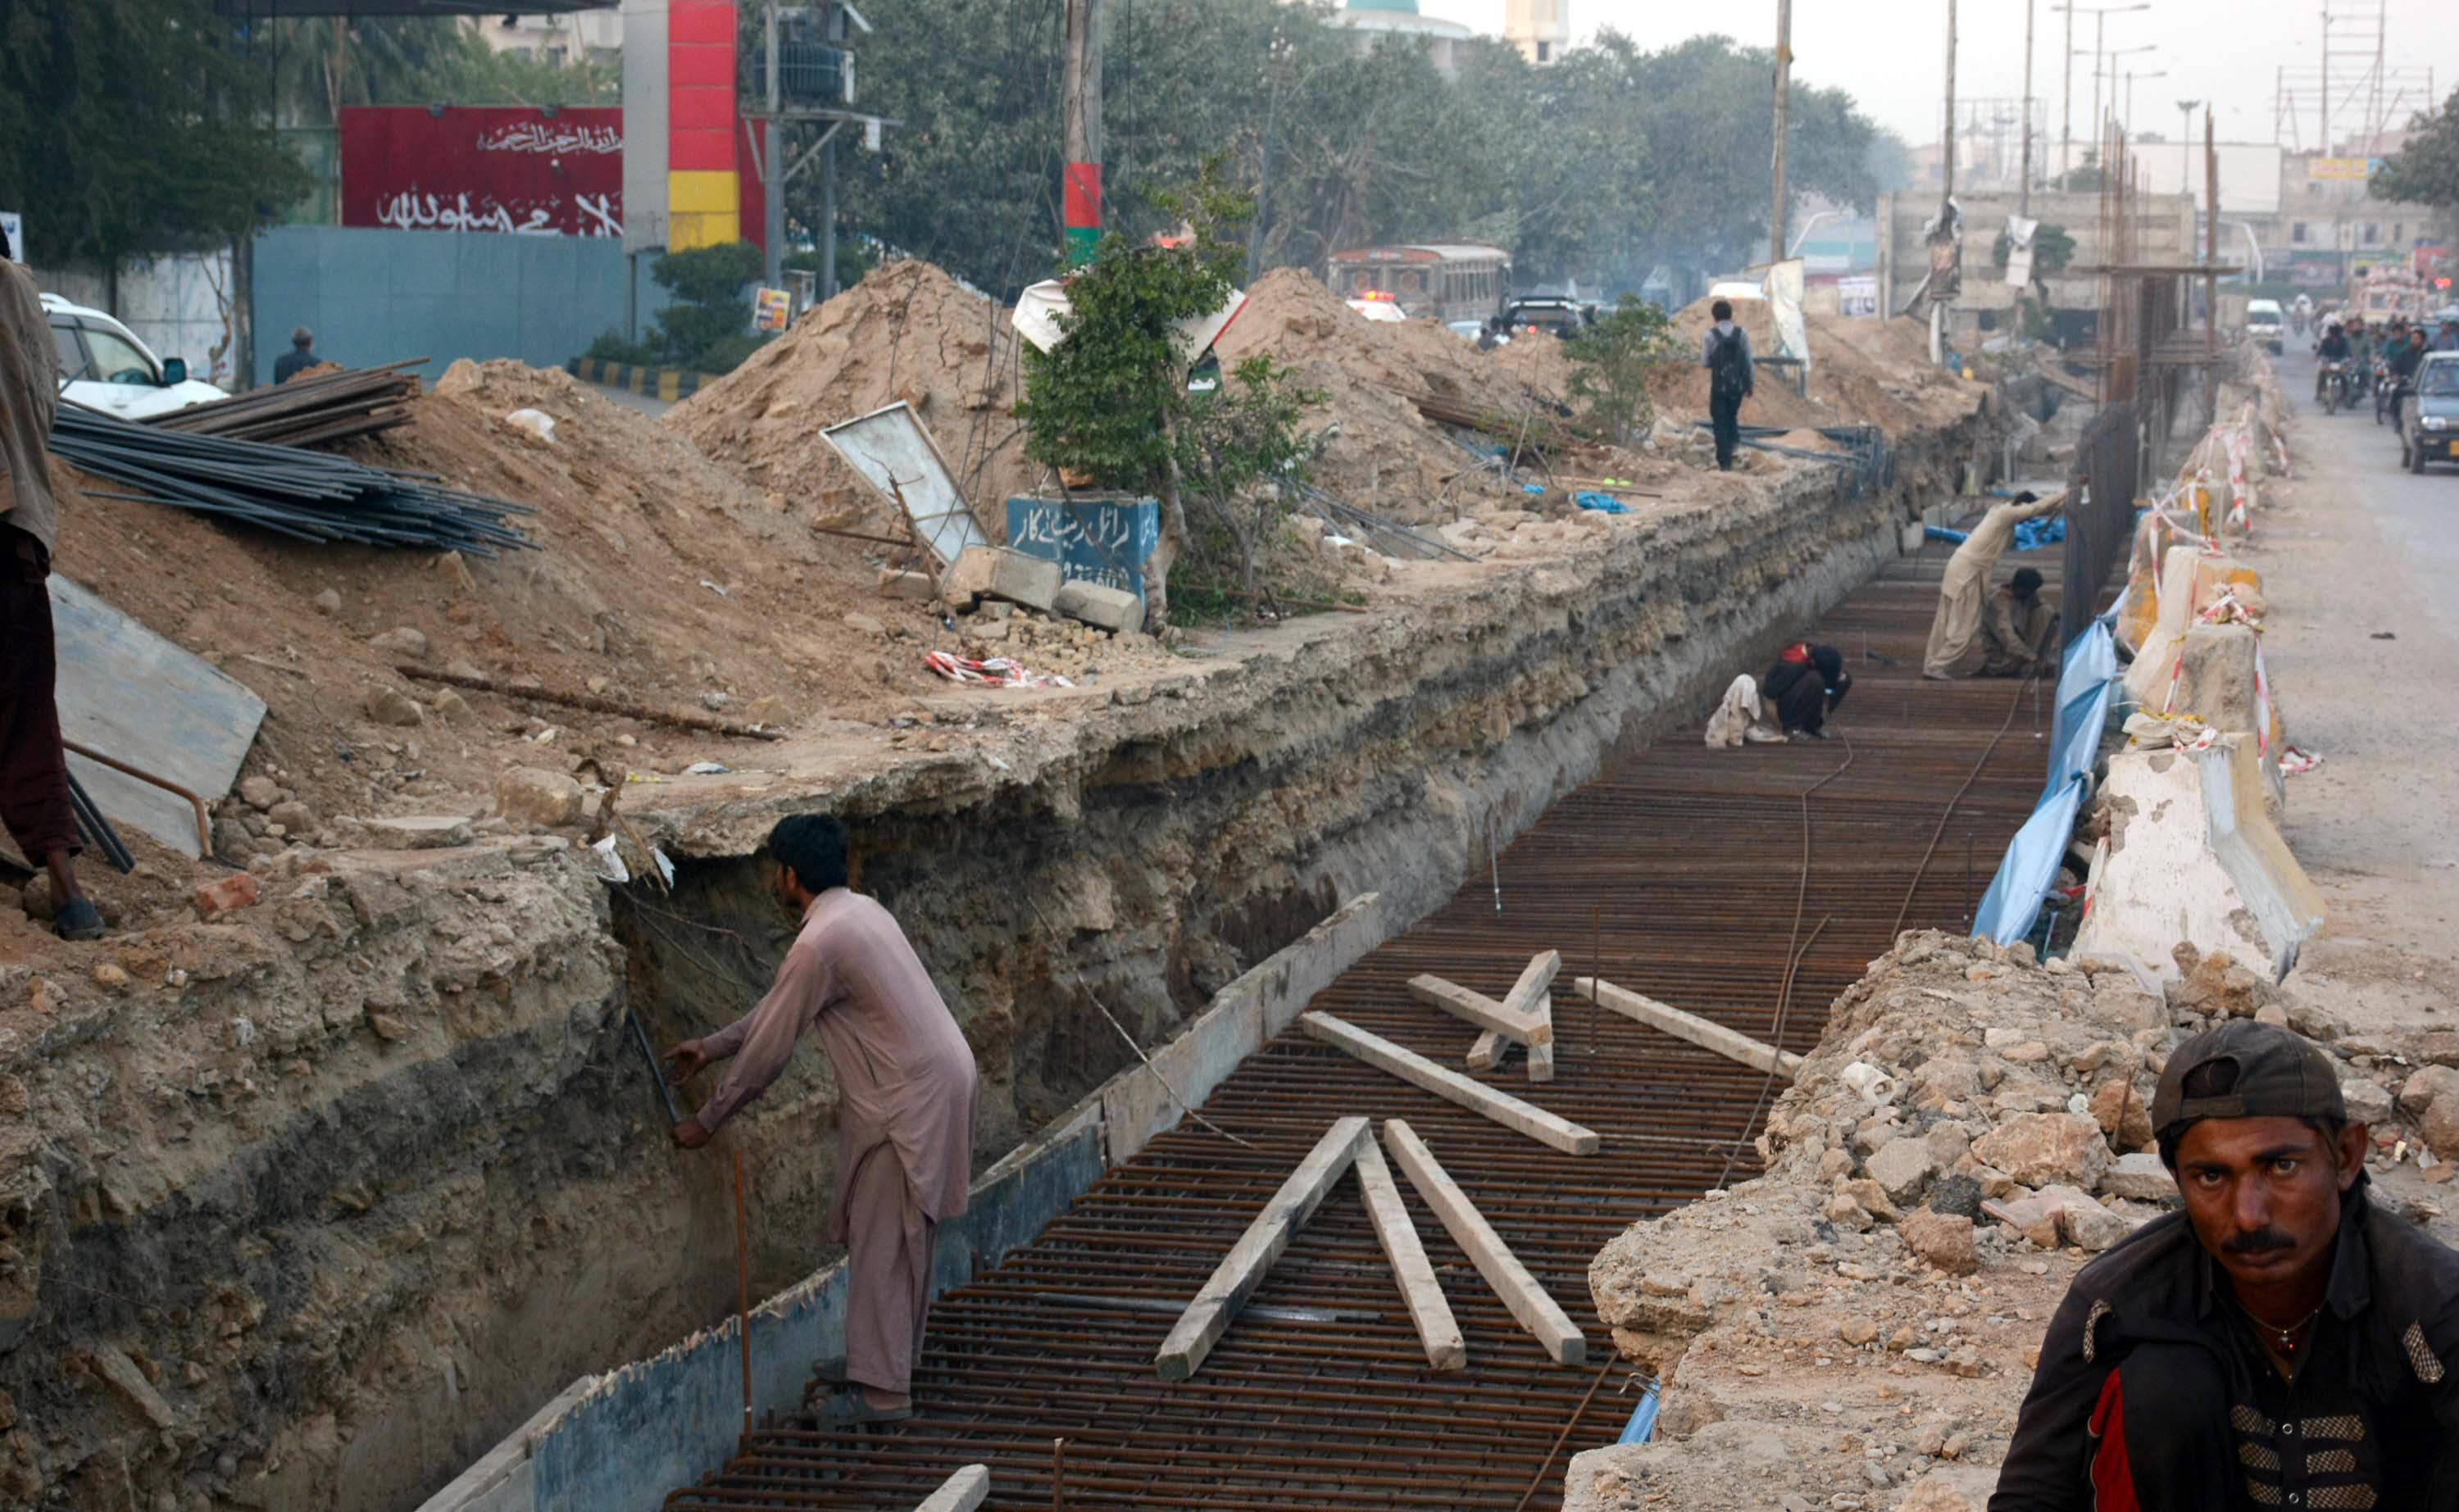 cm orders to open one track of underpass next week